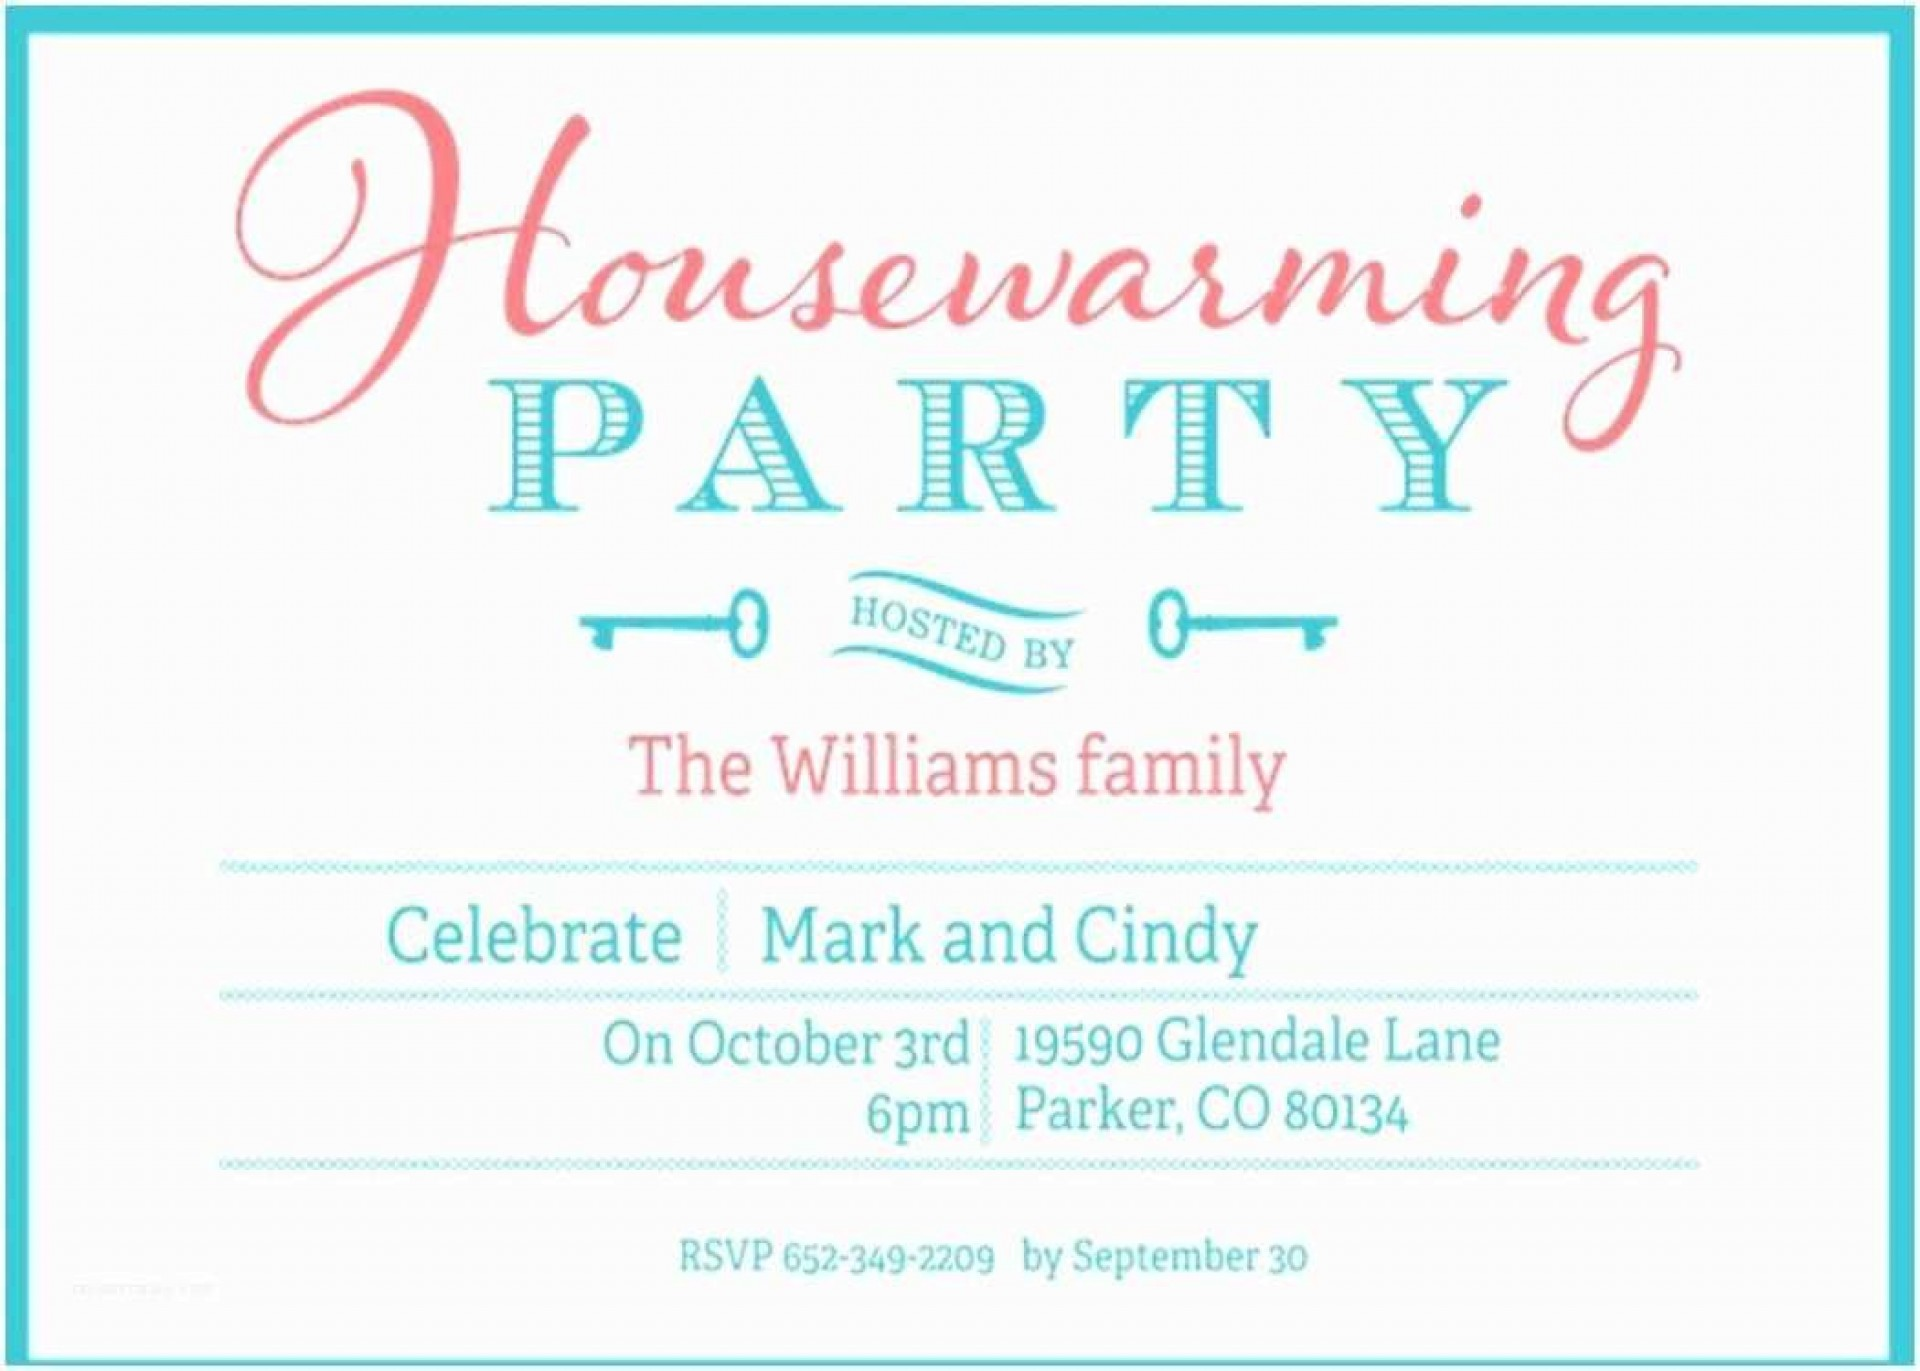 007 Rare Housewarming Party Invite Template High Definition  Templates Invitation Maker Editable1920